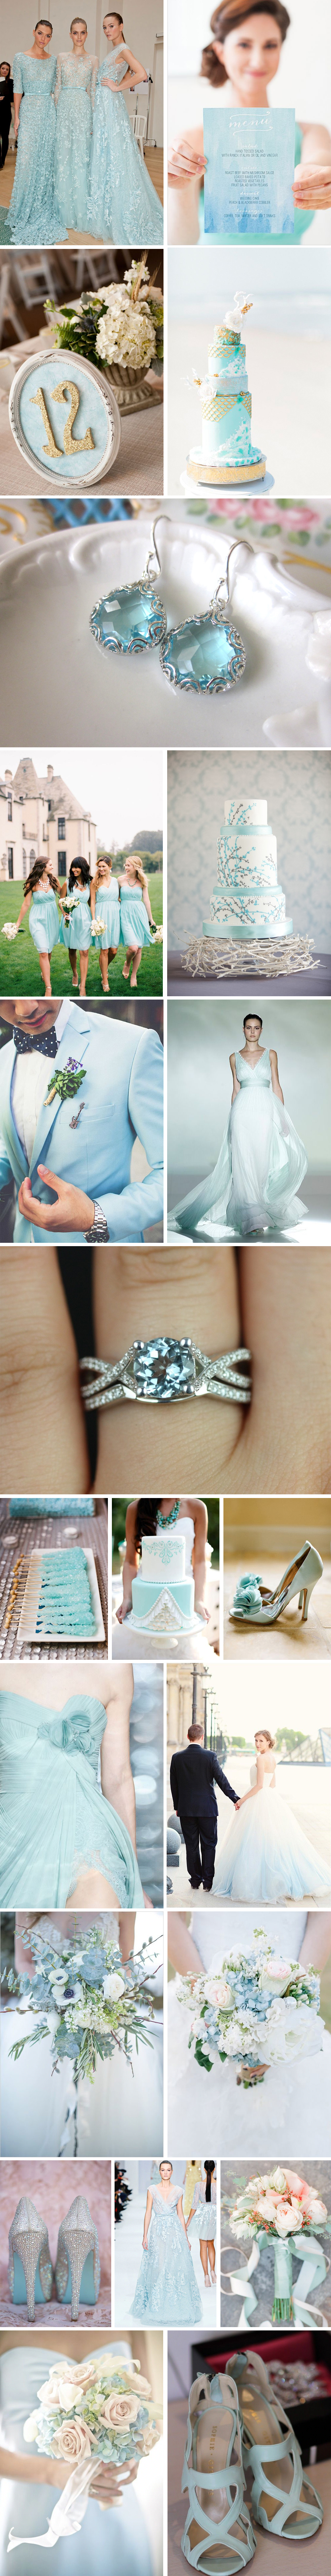 Cool, calming and ethereal, Aquamarine is a shade with a wet and watery feel. Open and expansive, this restful blue also acts as a stress reducer. Stress reducer!Did you hear that? What more does one want than something calming and relaxing for their big day?